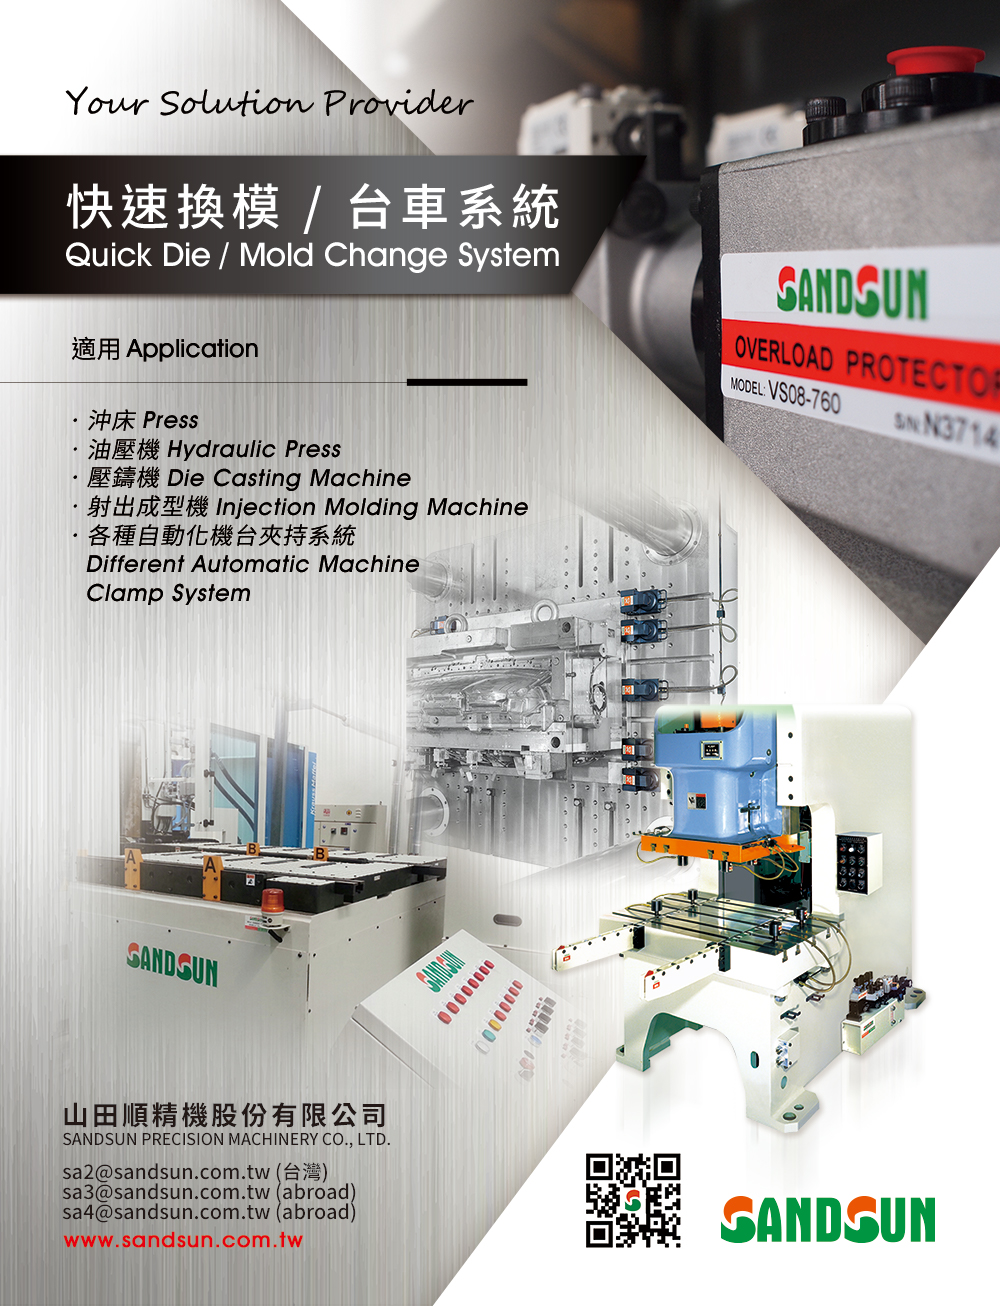 SANDSUN PERCISION MACHINERY CO., LTD.